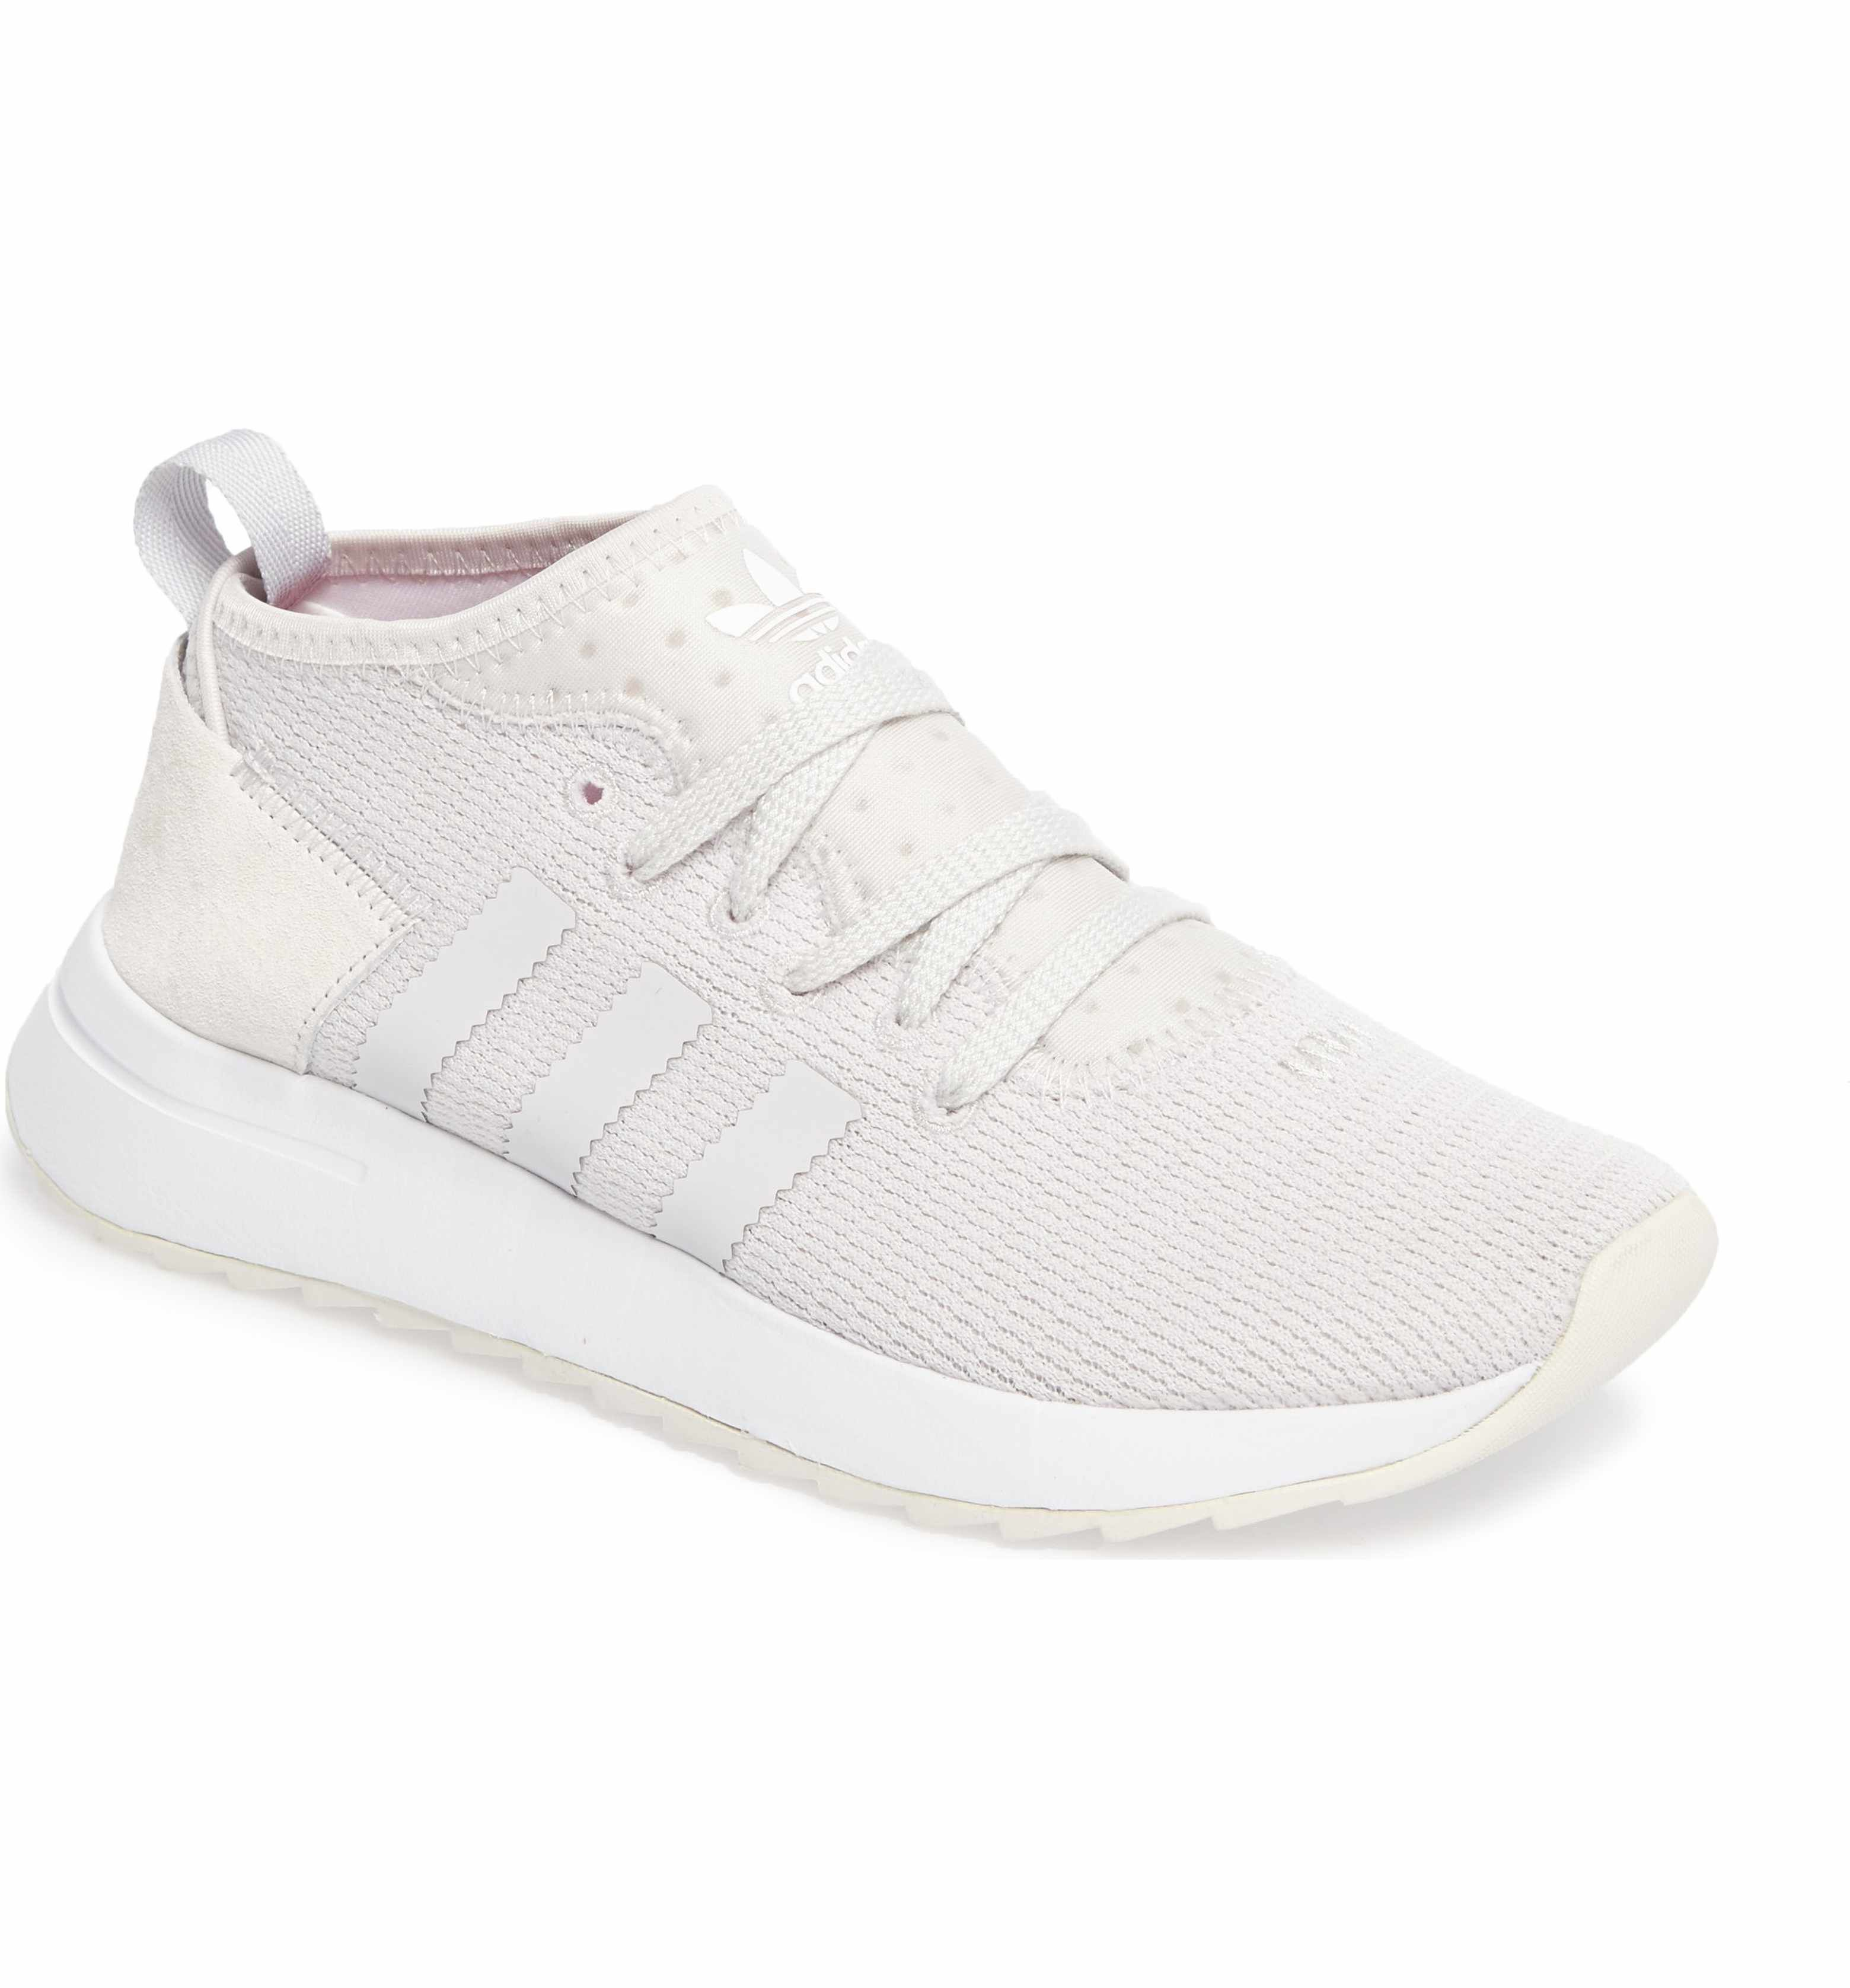 Main Image - adidas Flashback Winter Sneaker (Women)